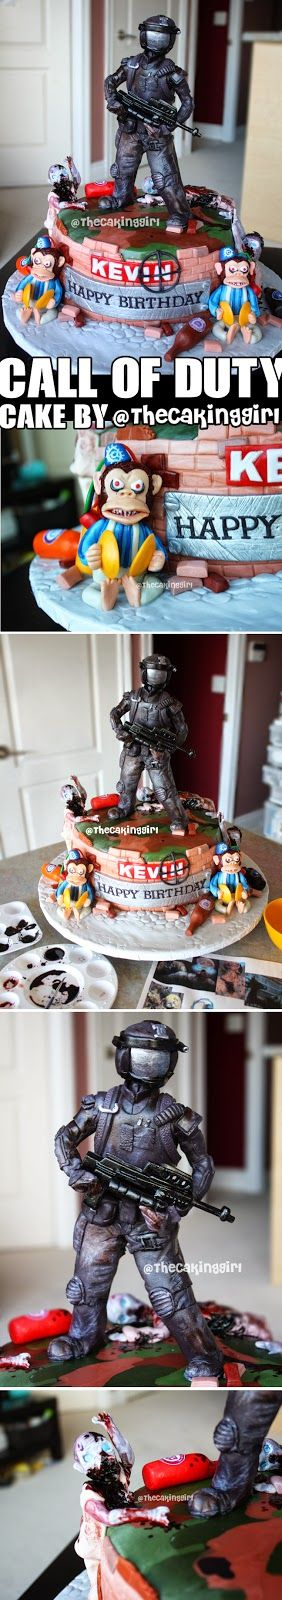 For any Call of Duty fans out there! Here is a Call of duty cake idea! (From TheCakingGirl: Call of Duty Cake!)